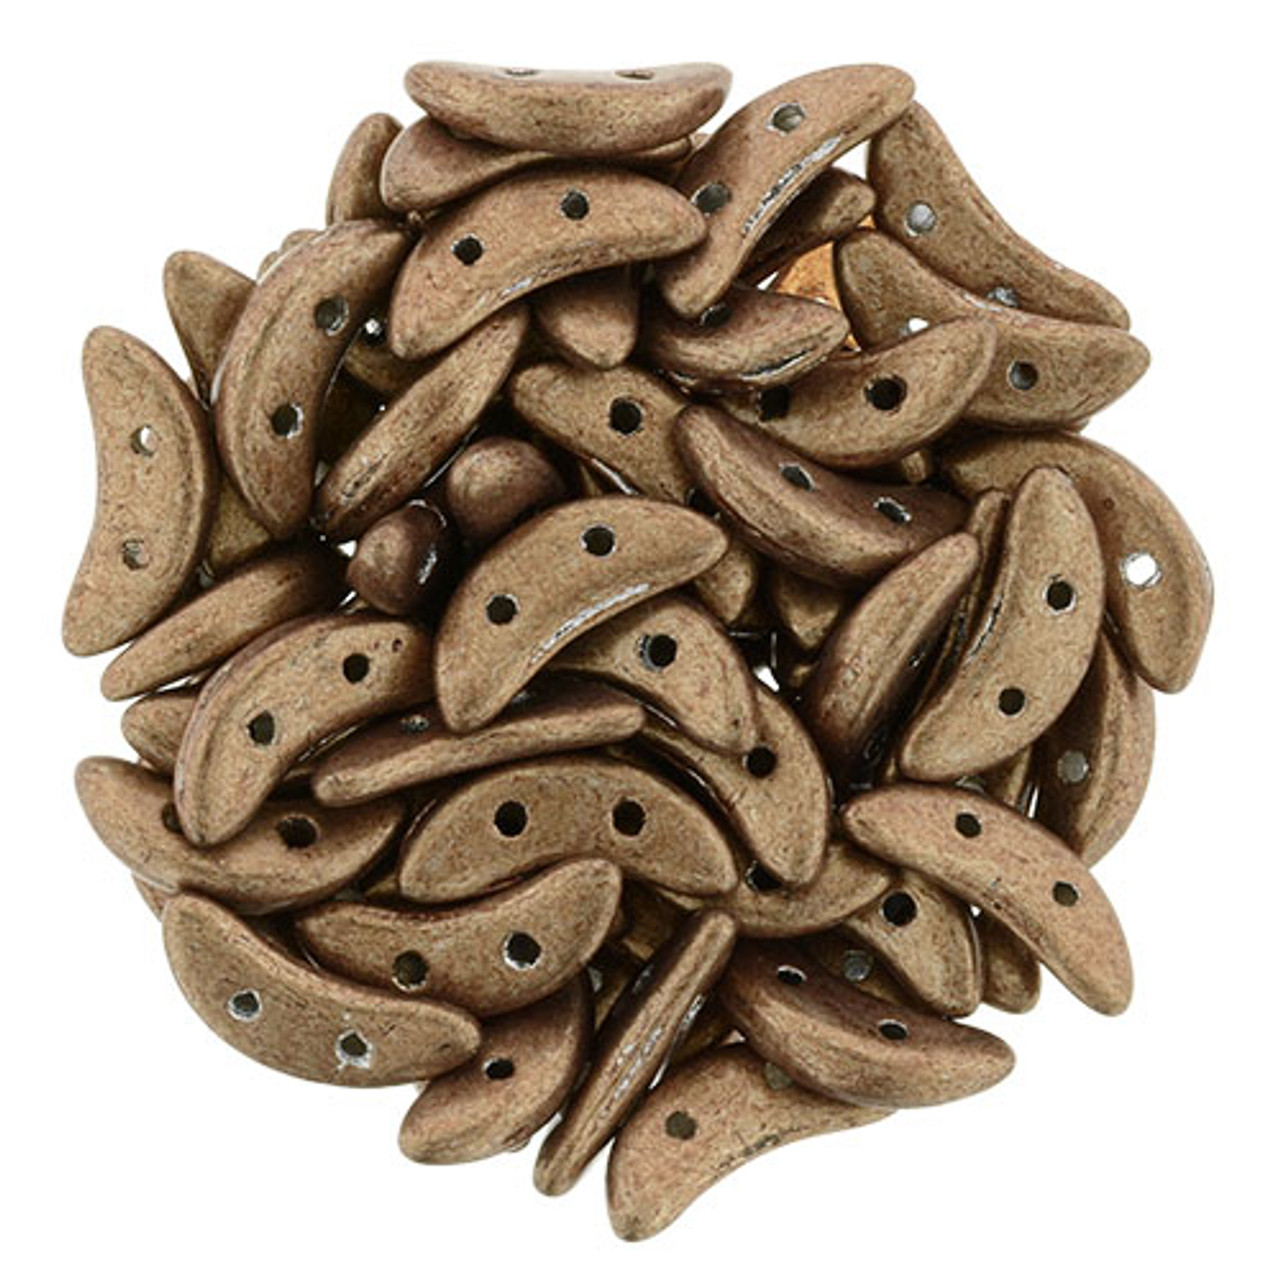 3x10mm Saturated Metallic Tan 2-Hole Crescent Beads